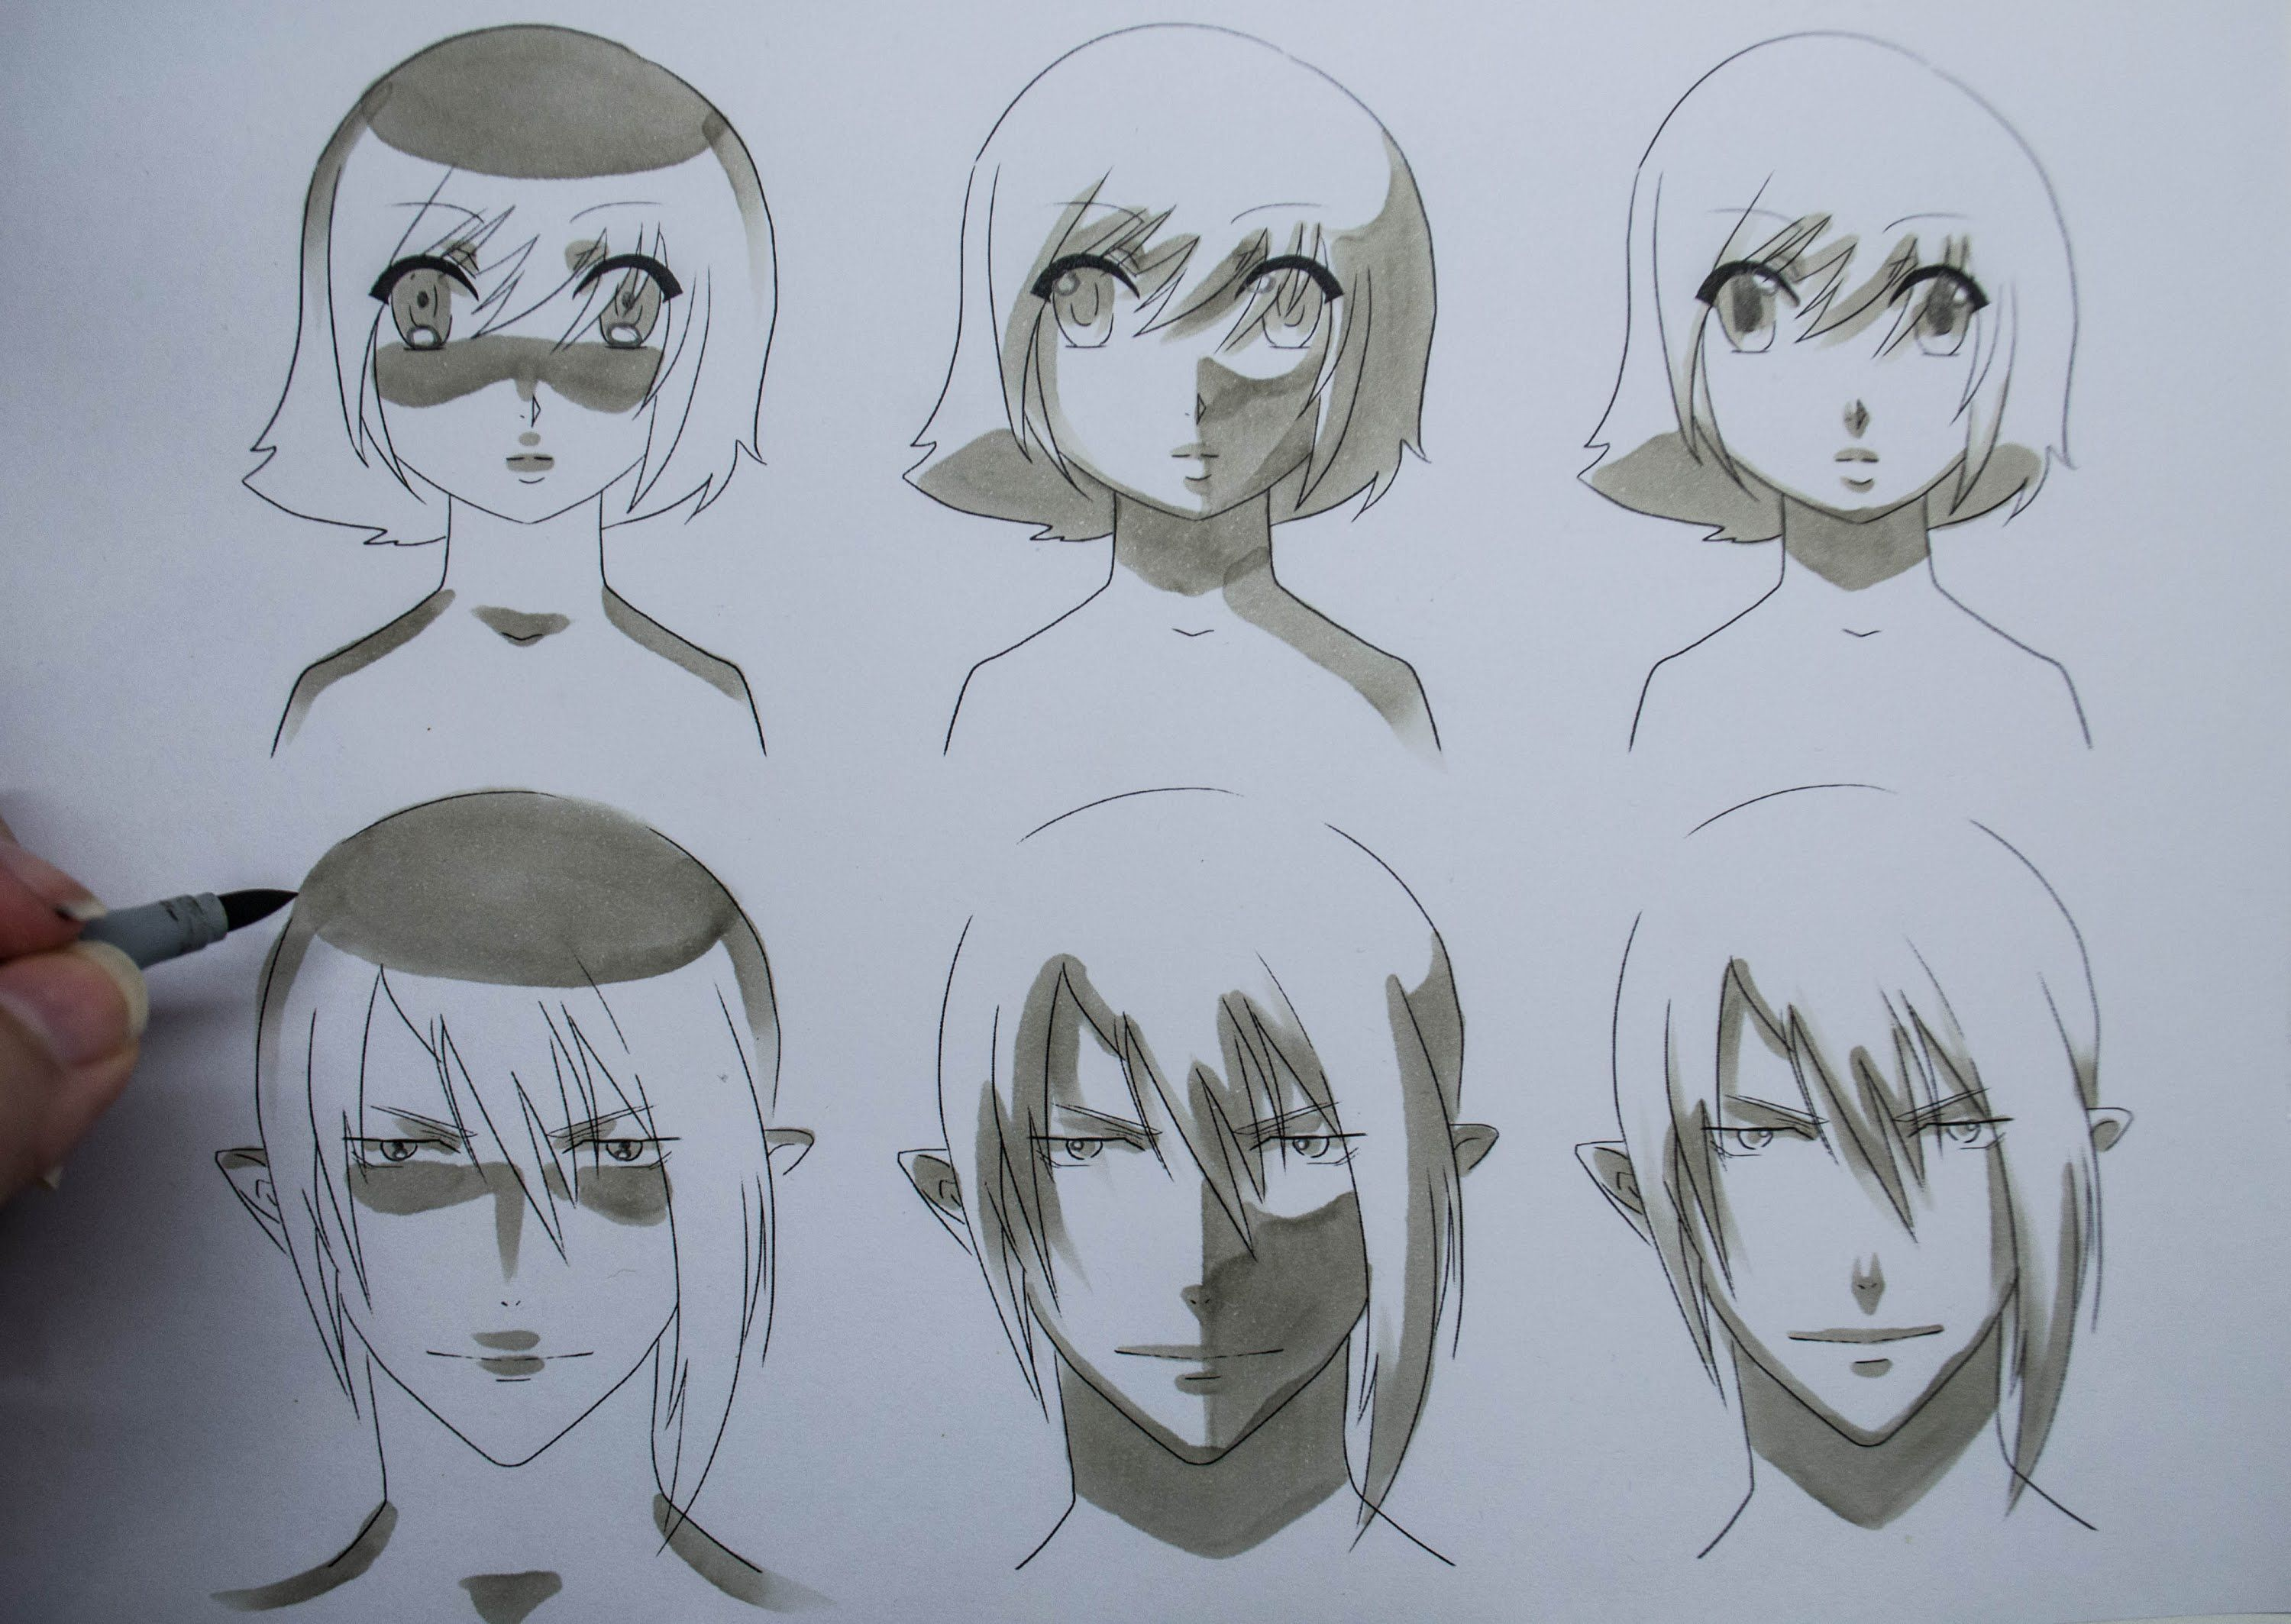 How To Draw Manga Shading Manga Faces Three Different Ways | Drawing Misc. | Pinterest | Manga ...